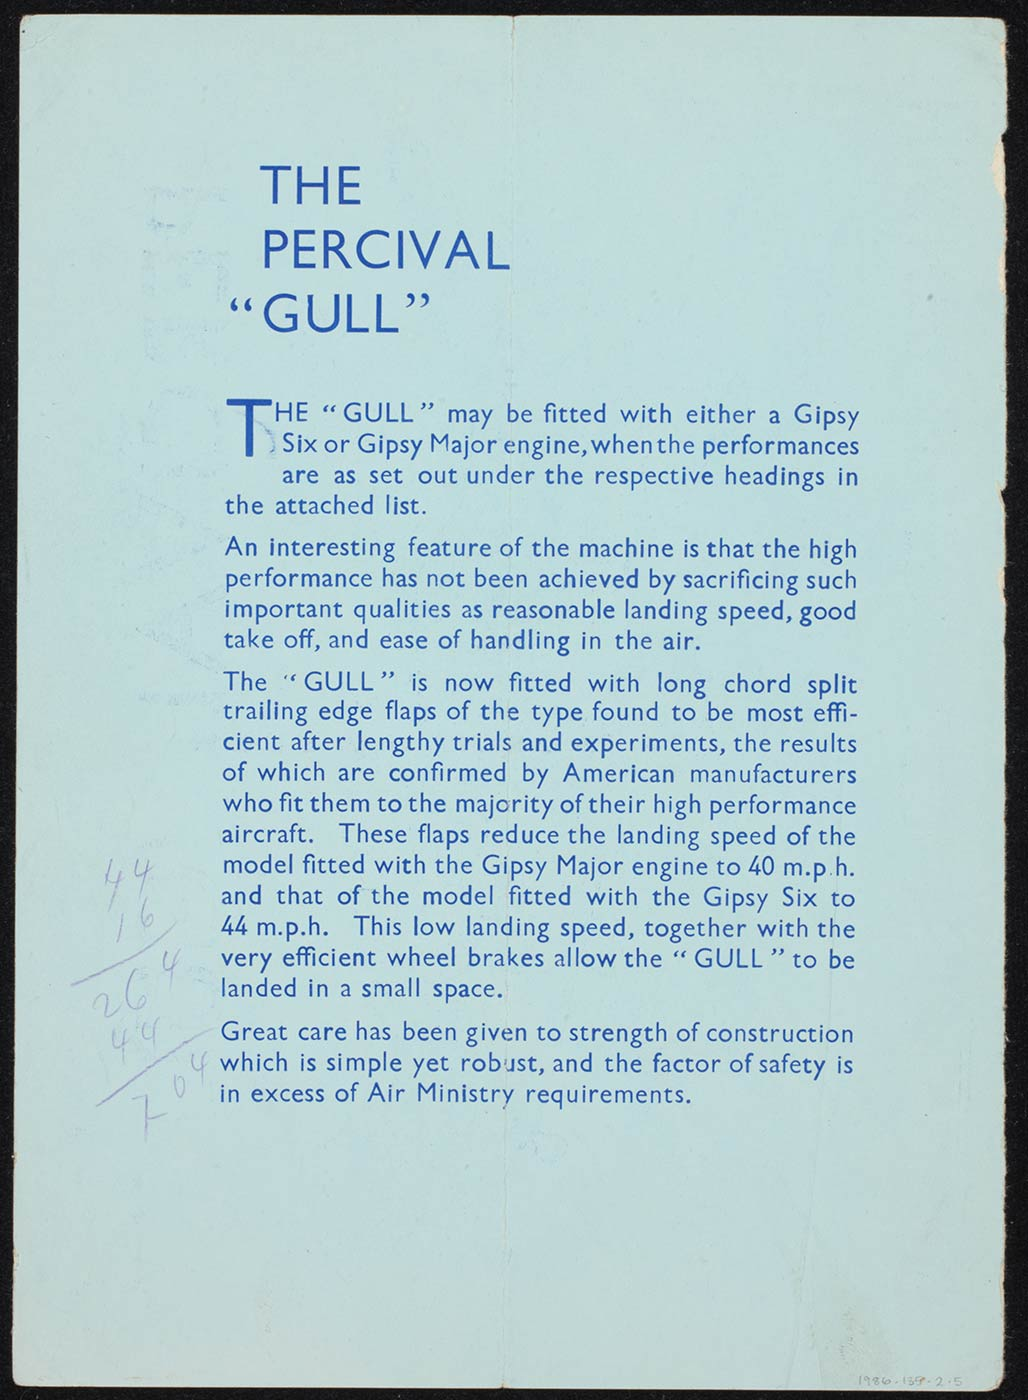 Copy of a pale blue advertising brochure for the Percival Gull aircraft. Text includes: 'The Gull may be fitted with either a Gipsy Six or Gipsy major engine, when the performances are set out under the respective headings in the attached list'.  - click to view larger image